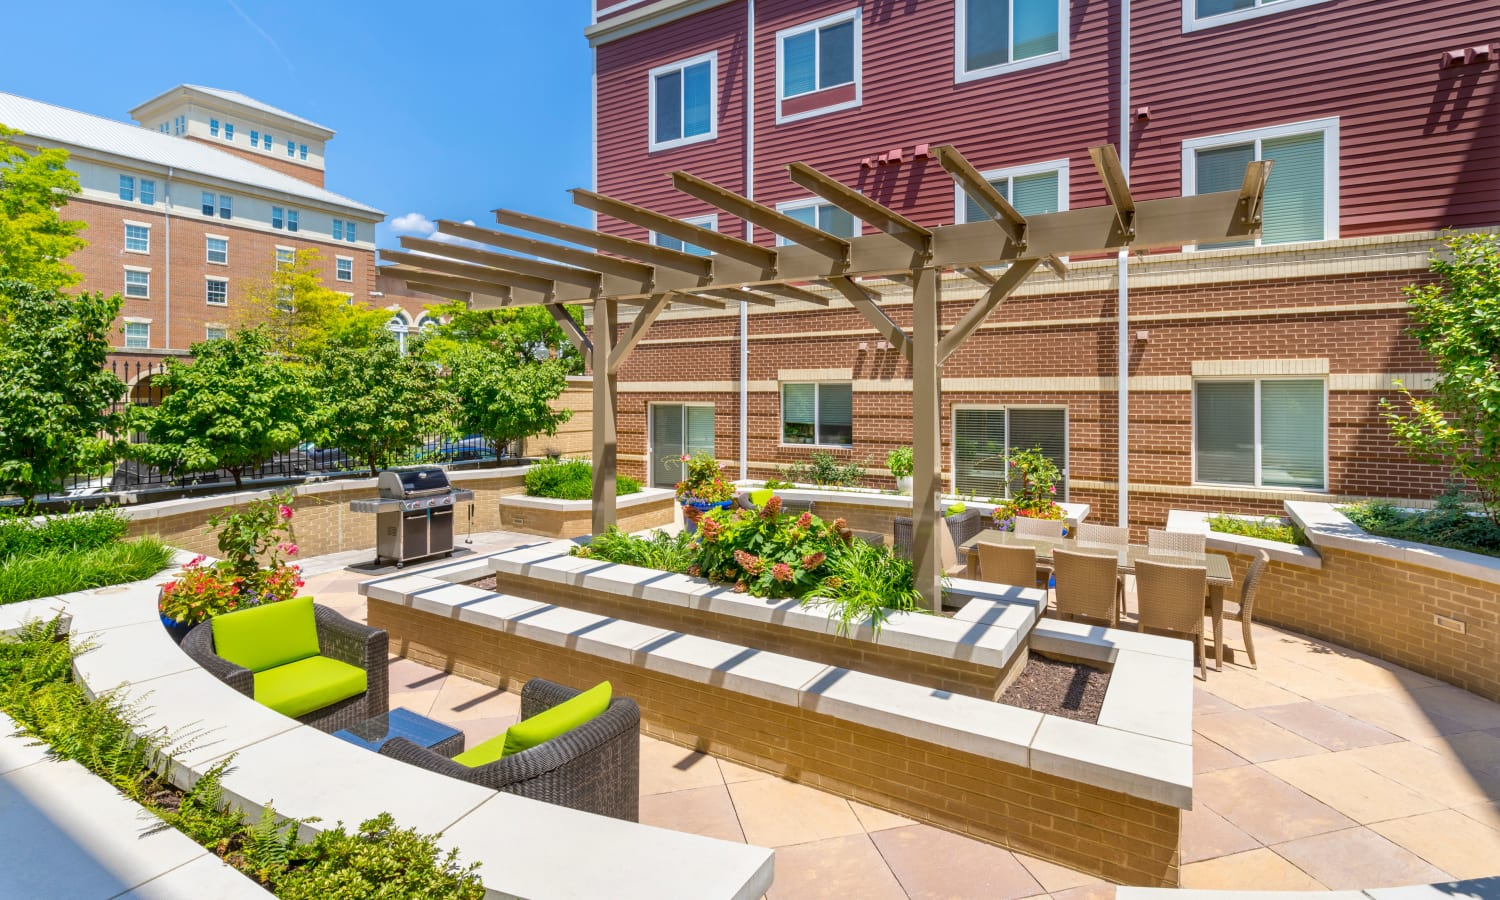 Comfortable outdoor seating and beautiful landscaping in one of the courtyards at The Bixby in Washington, District of Columbia